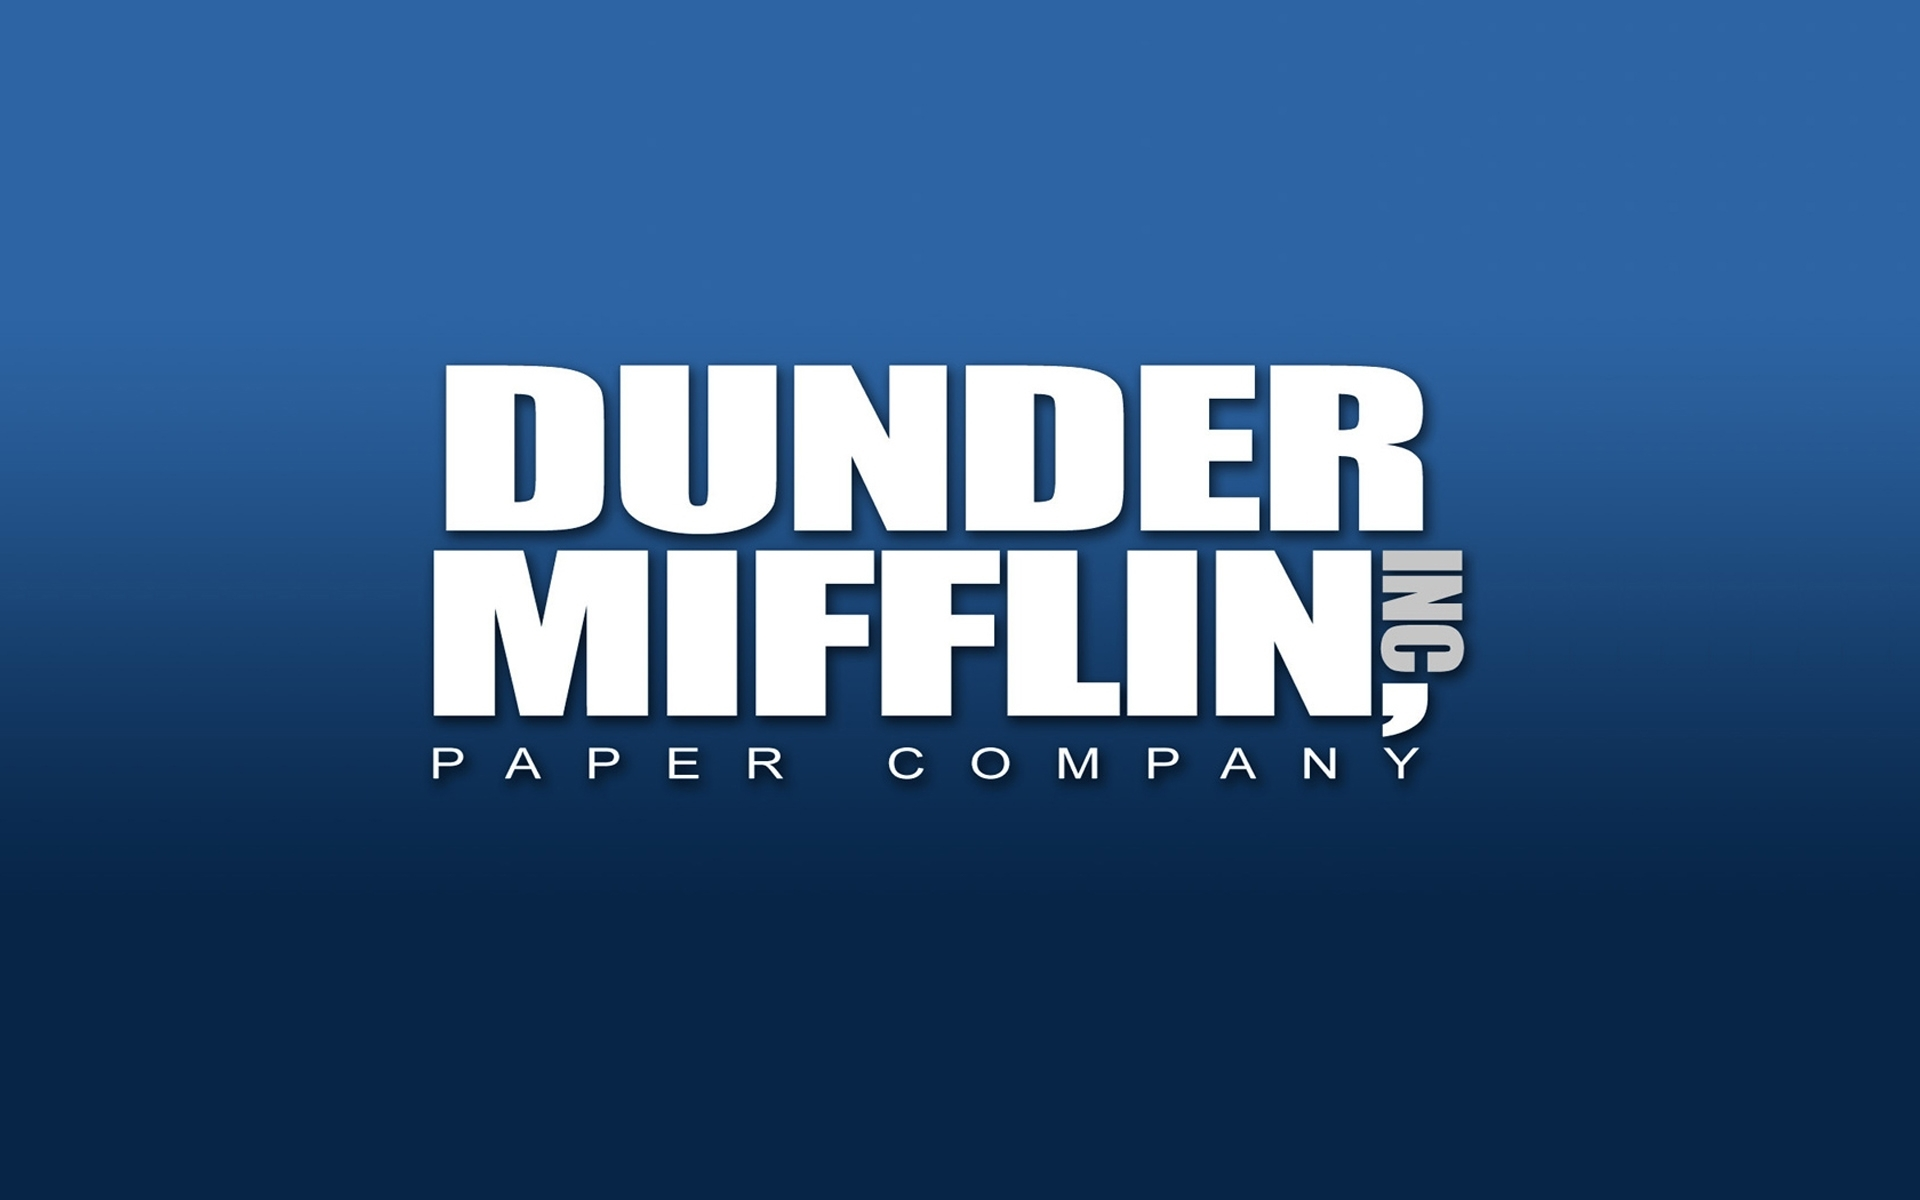 download the dunder mifflin wallpaper, dunder mifflin iphone